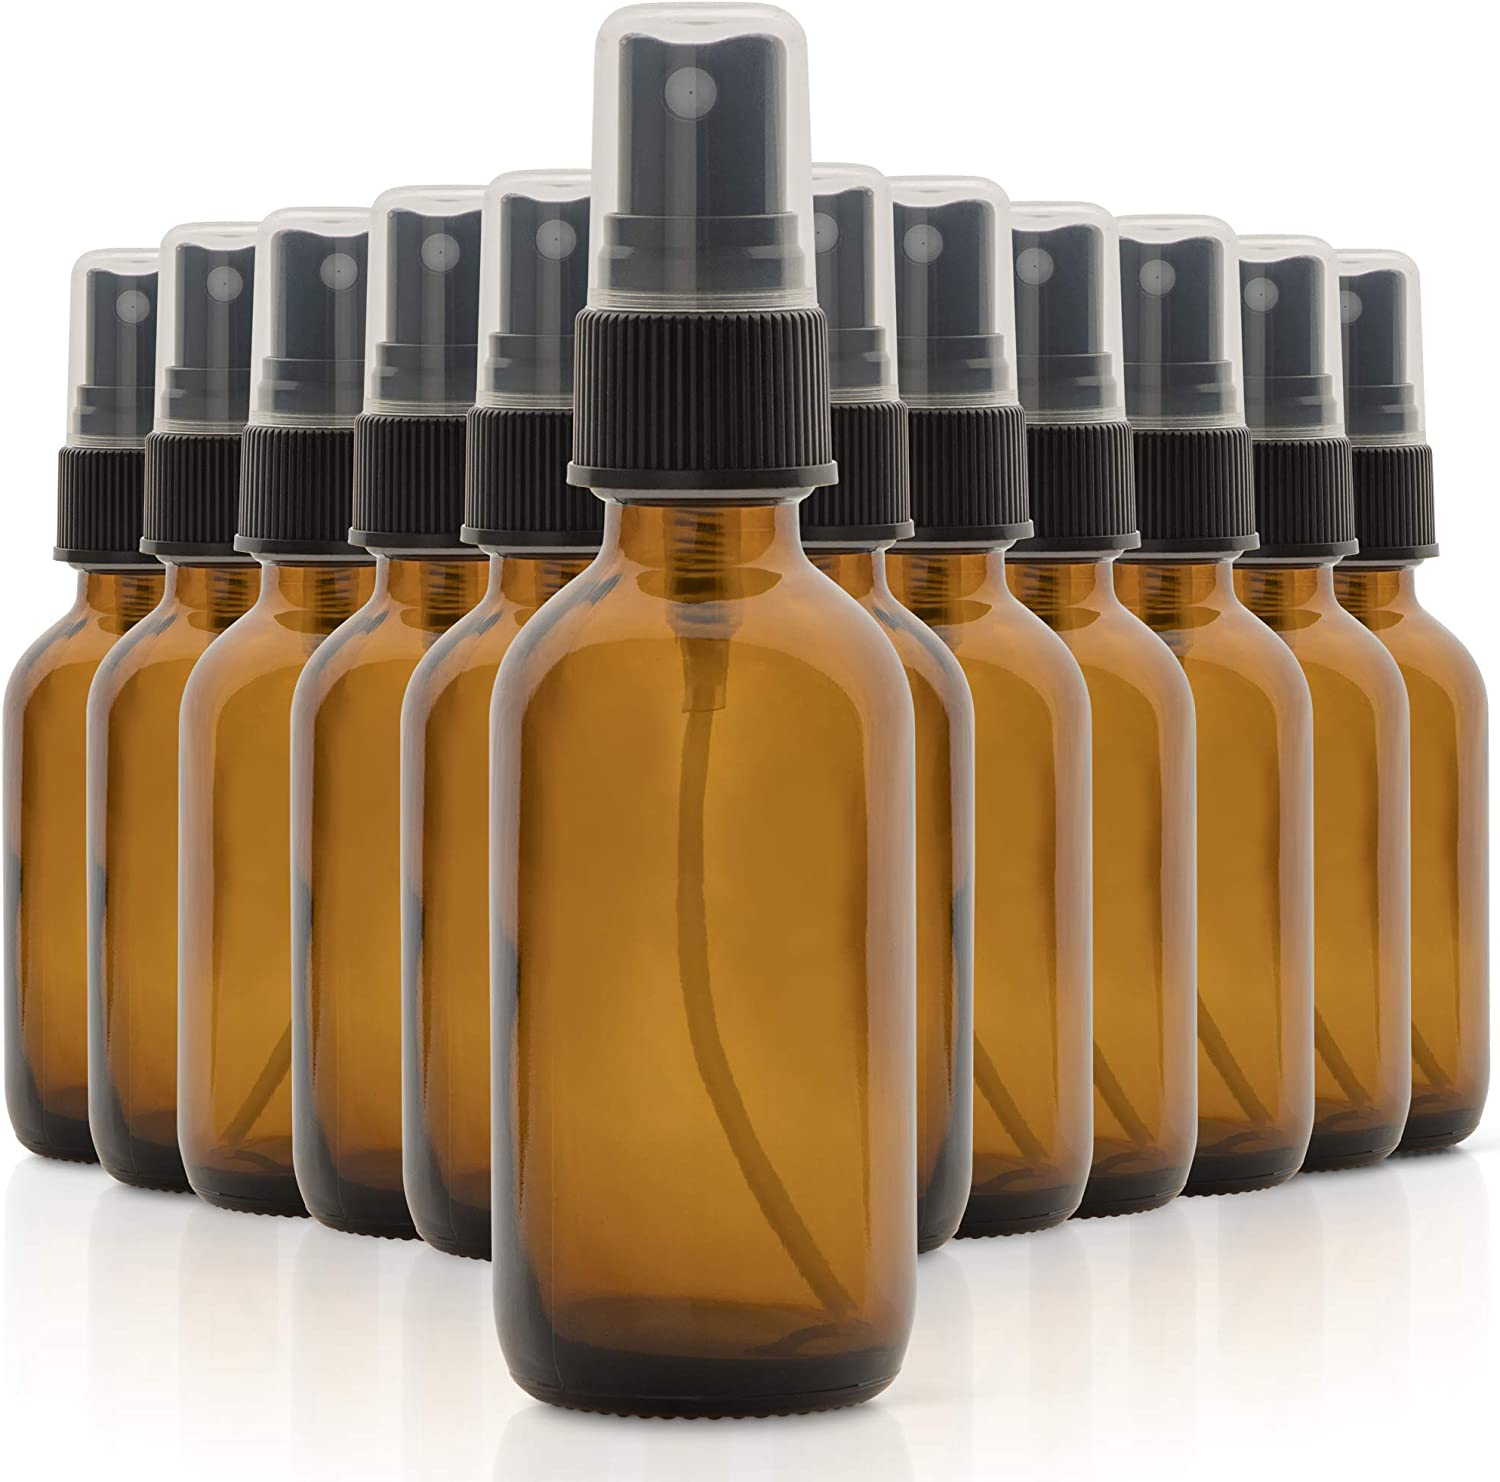 1790 Amber Glass Essential Oil Bottles, 2 oz Small Glass Bottles, Glass Bottles for Essential Oils- BPA Free - Toxin Free - Mini Spray Bottle(12 Pack)